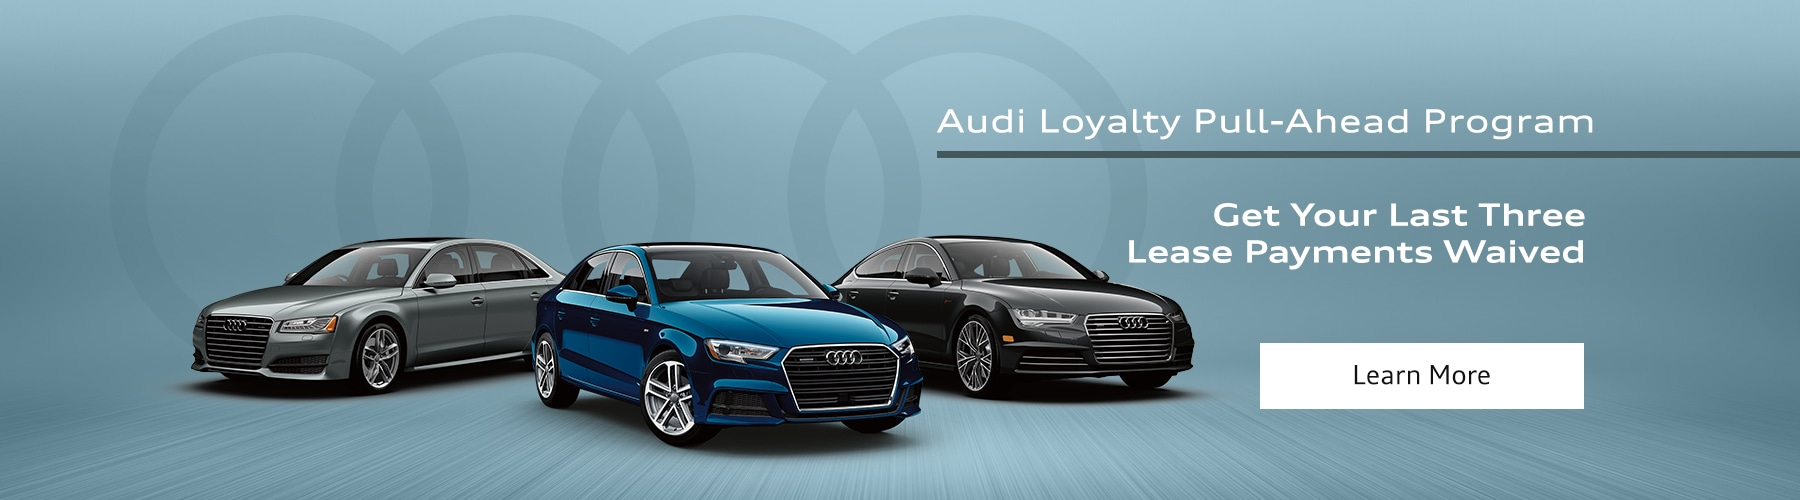 Audi Dealer NJ Audi Lease Deals Specials A A A A Q Q Q - Audi loyalty